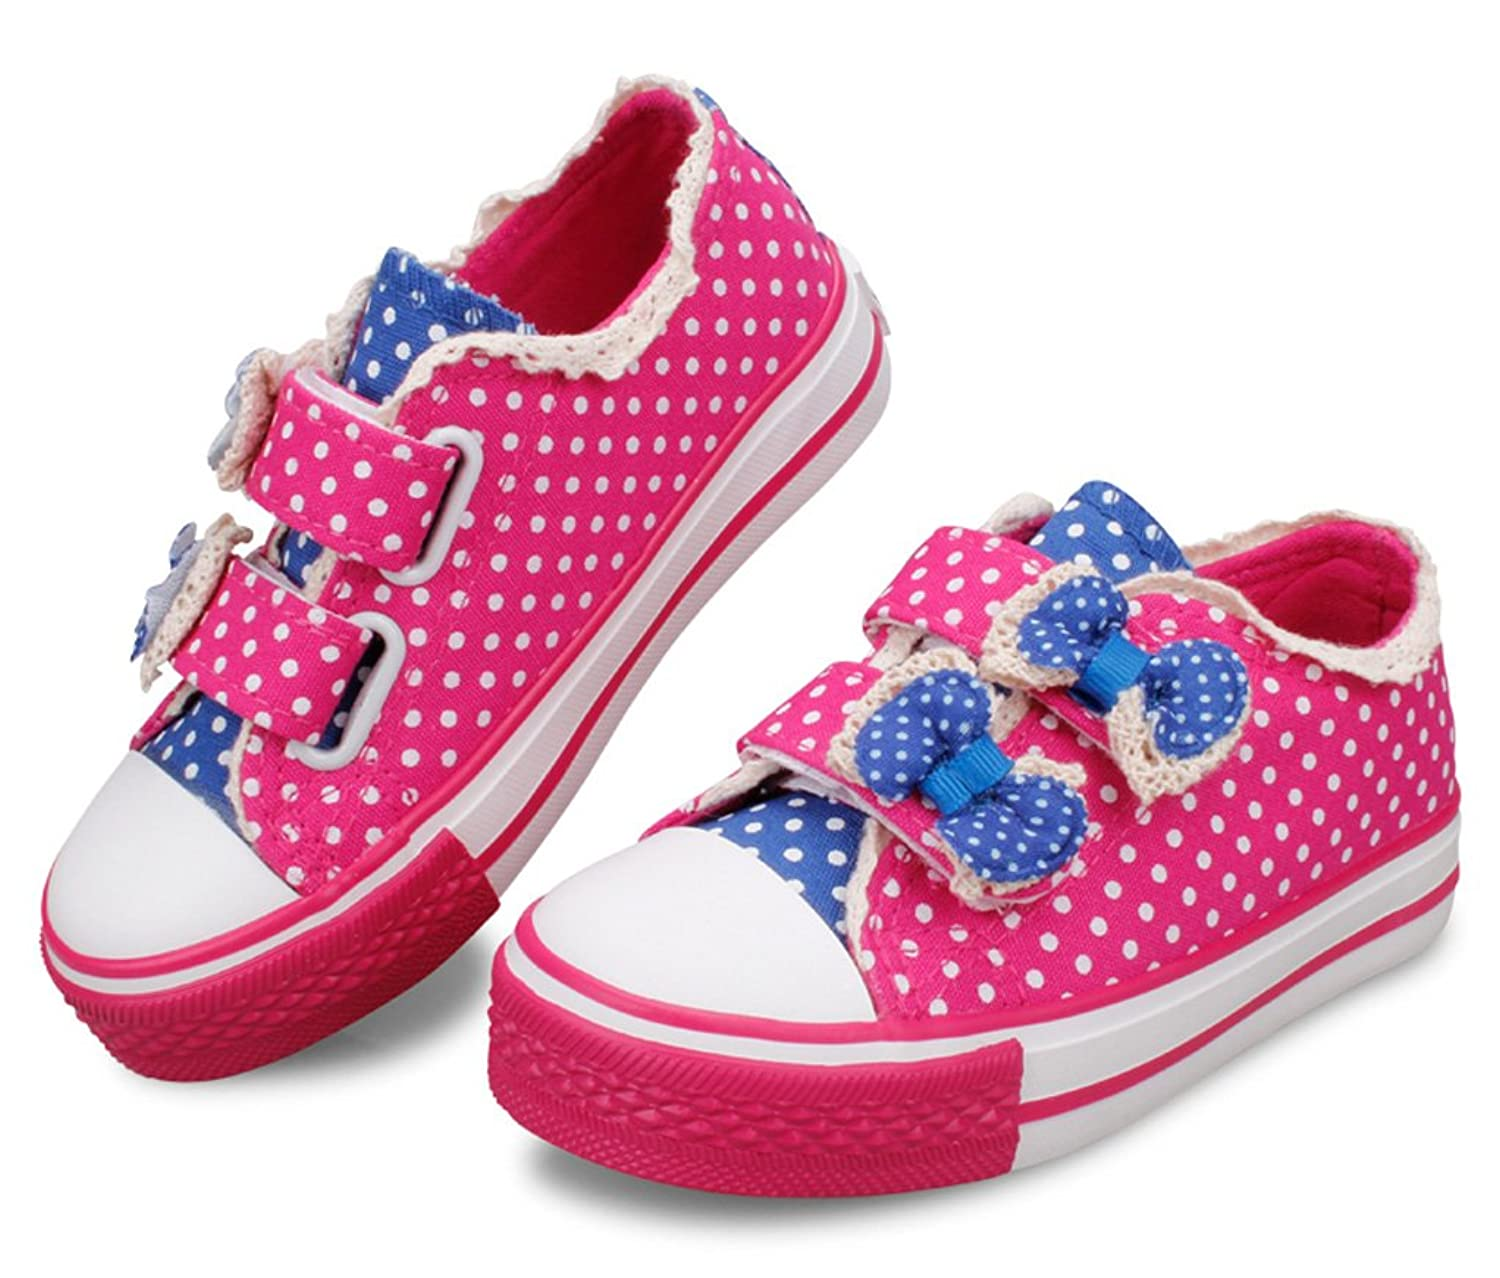 e9f87664f14ba6 2015 New D.s.mor Toddler Little Kid Cute Dots Bow Low Cut Strappy Fashion  Sneaker